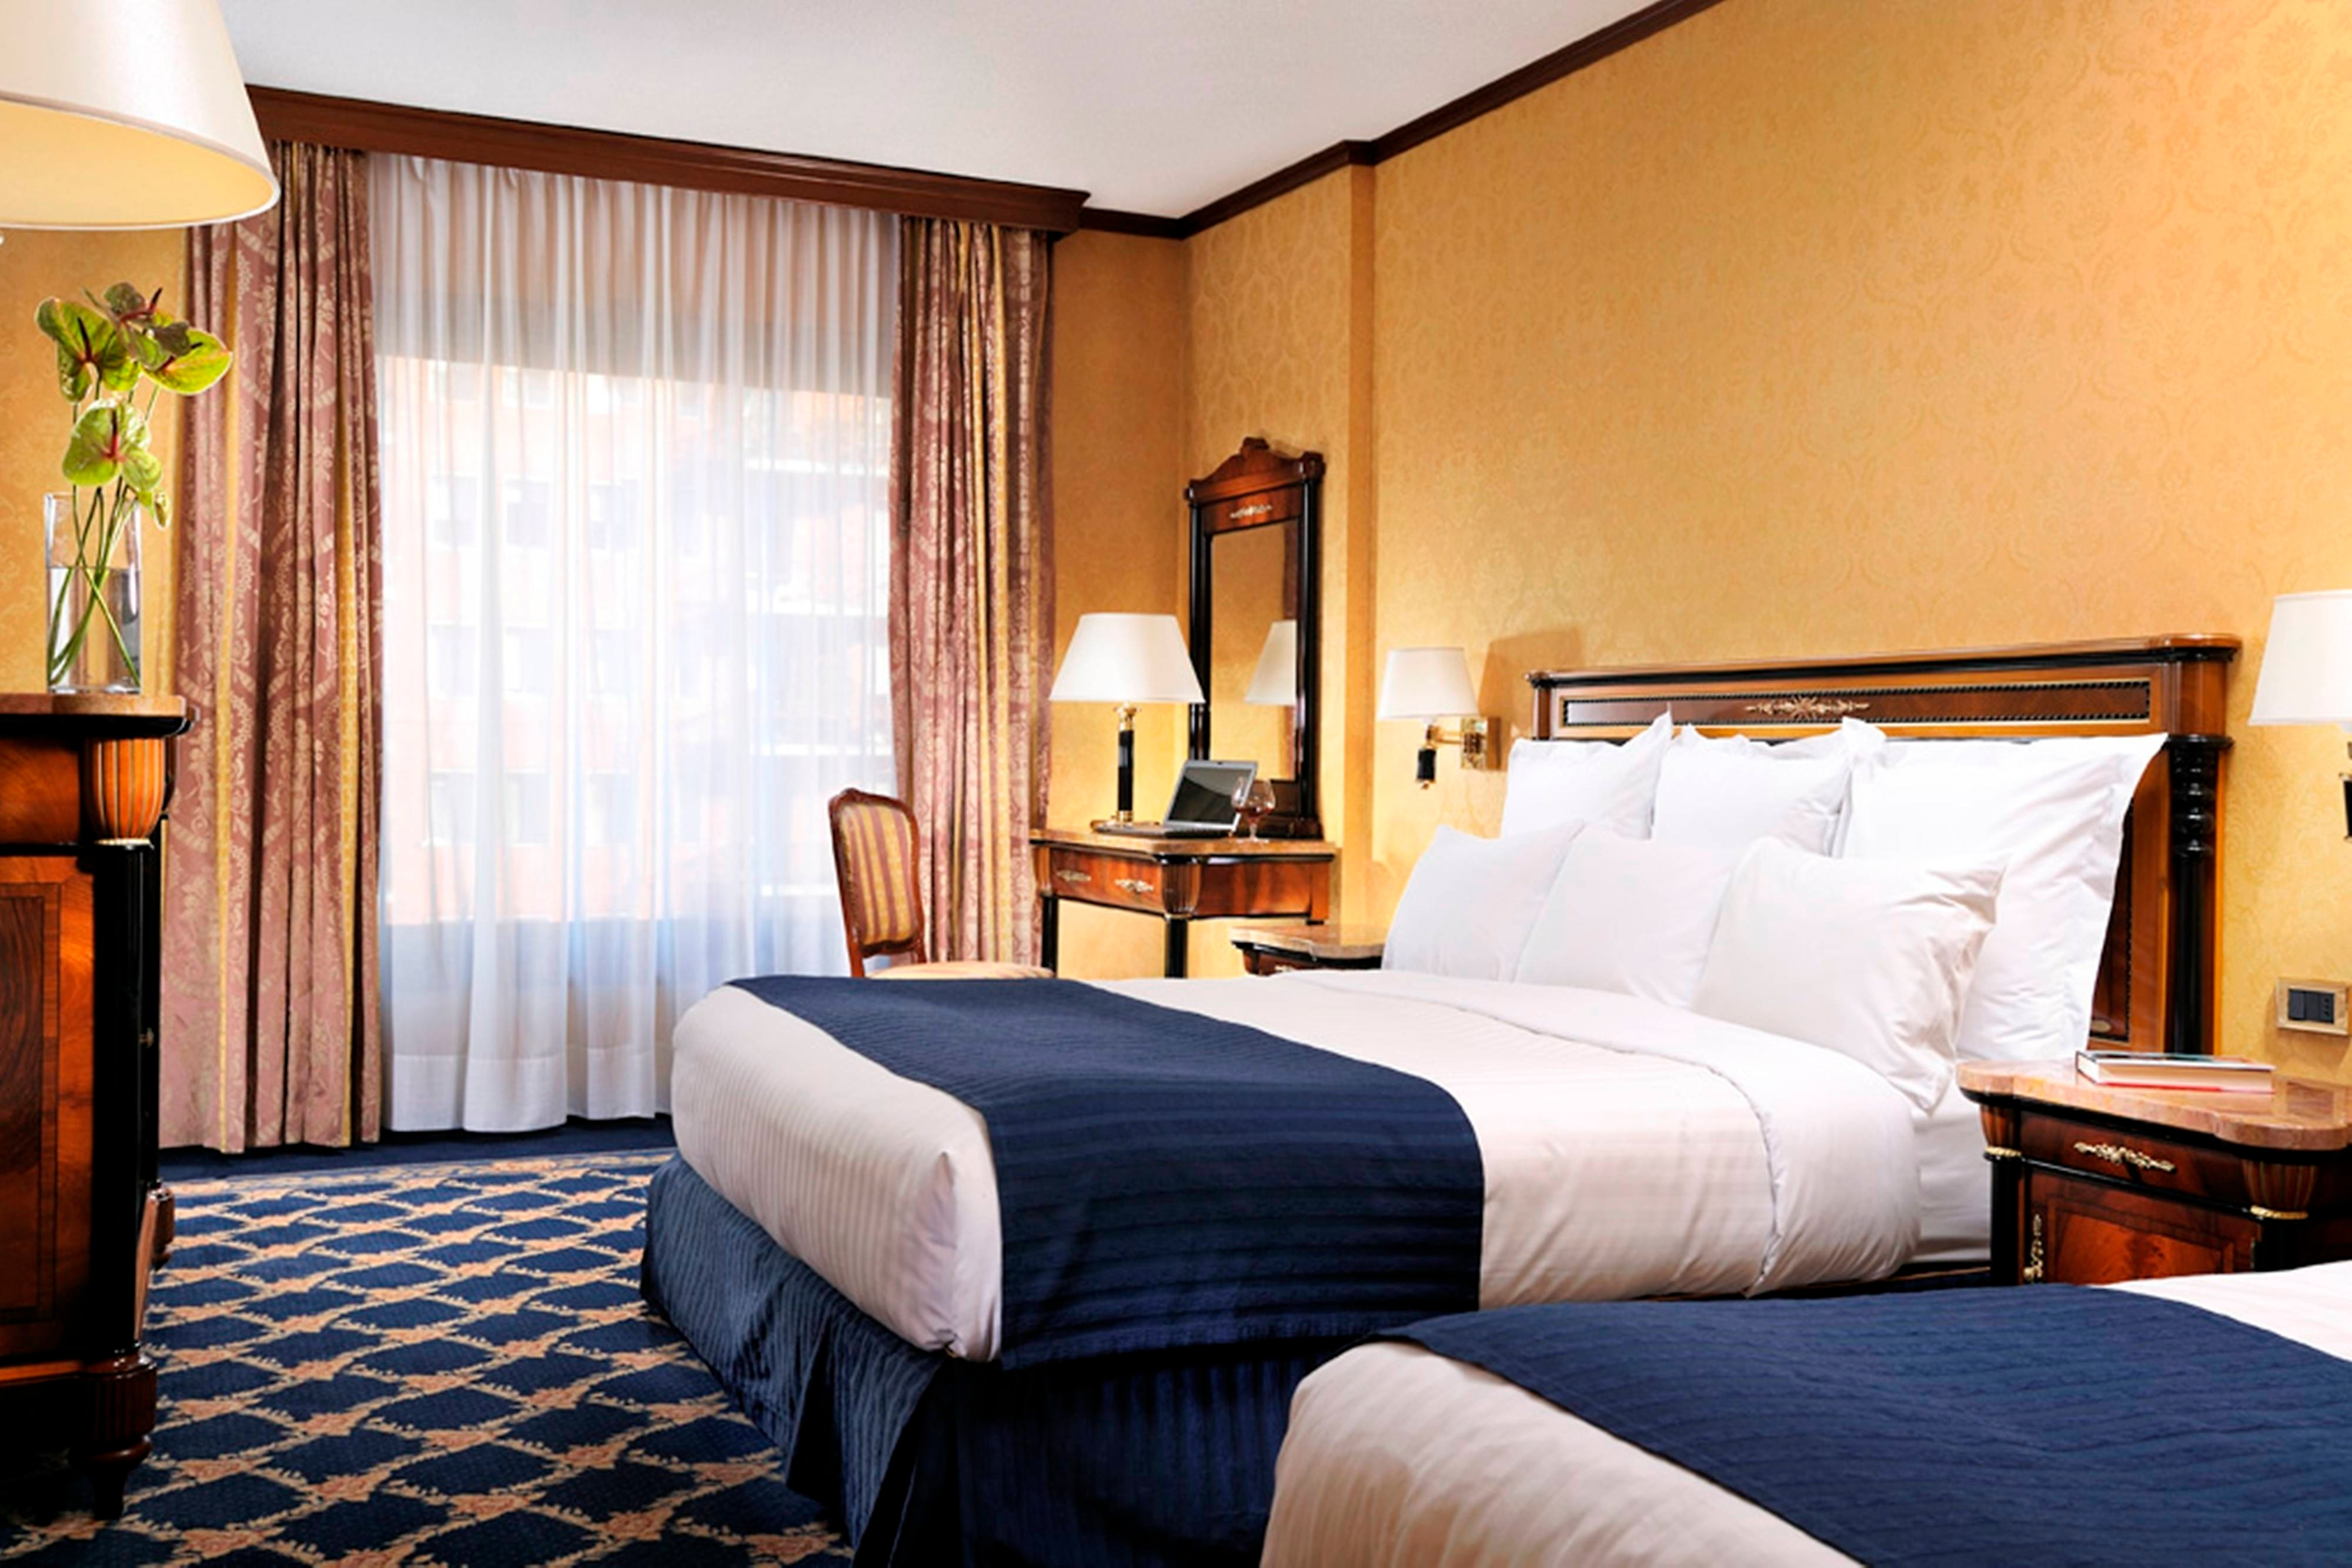 Milan Marriott Hotel Rooms